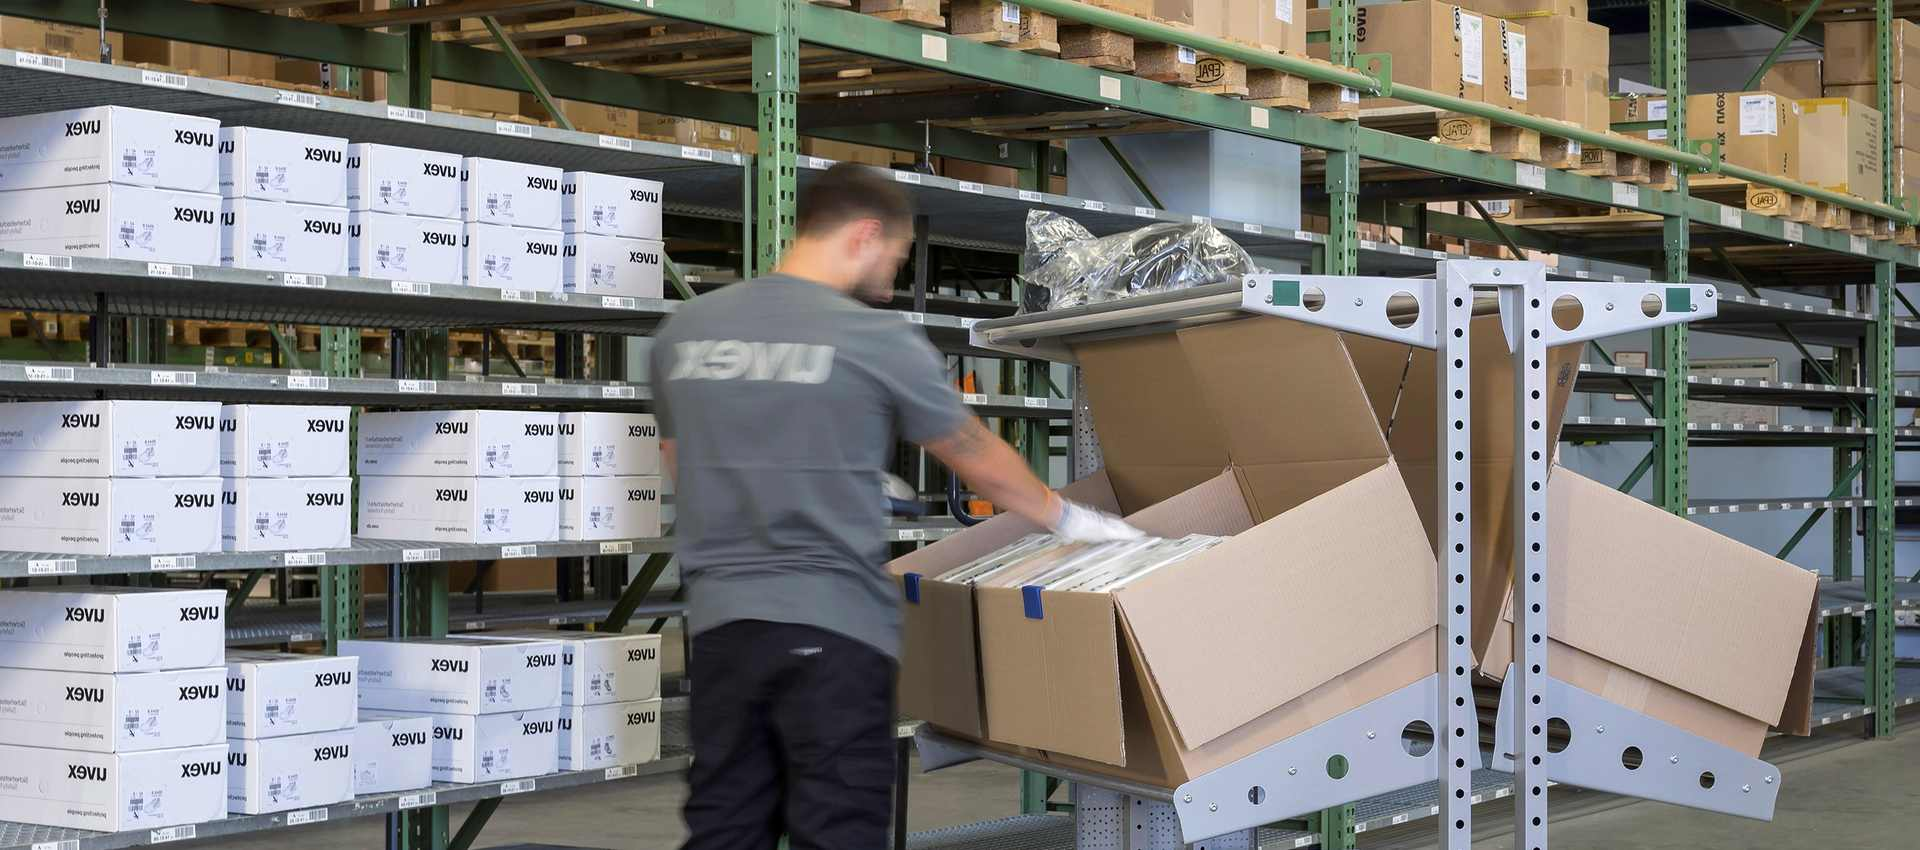 Warehouse Picking Carts: How to Pick the Right One for Your Warehouse